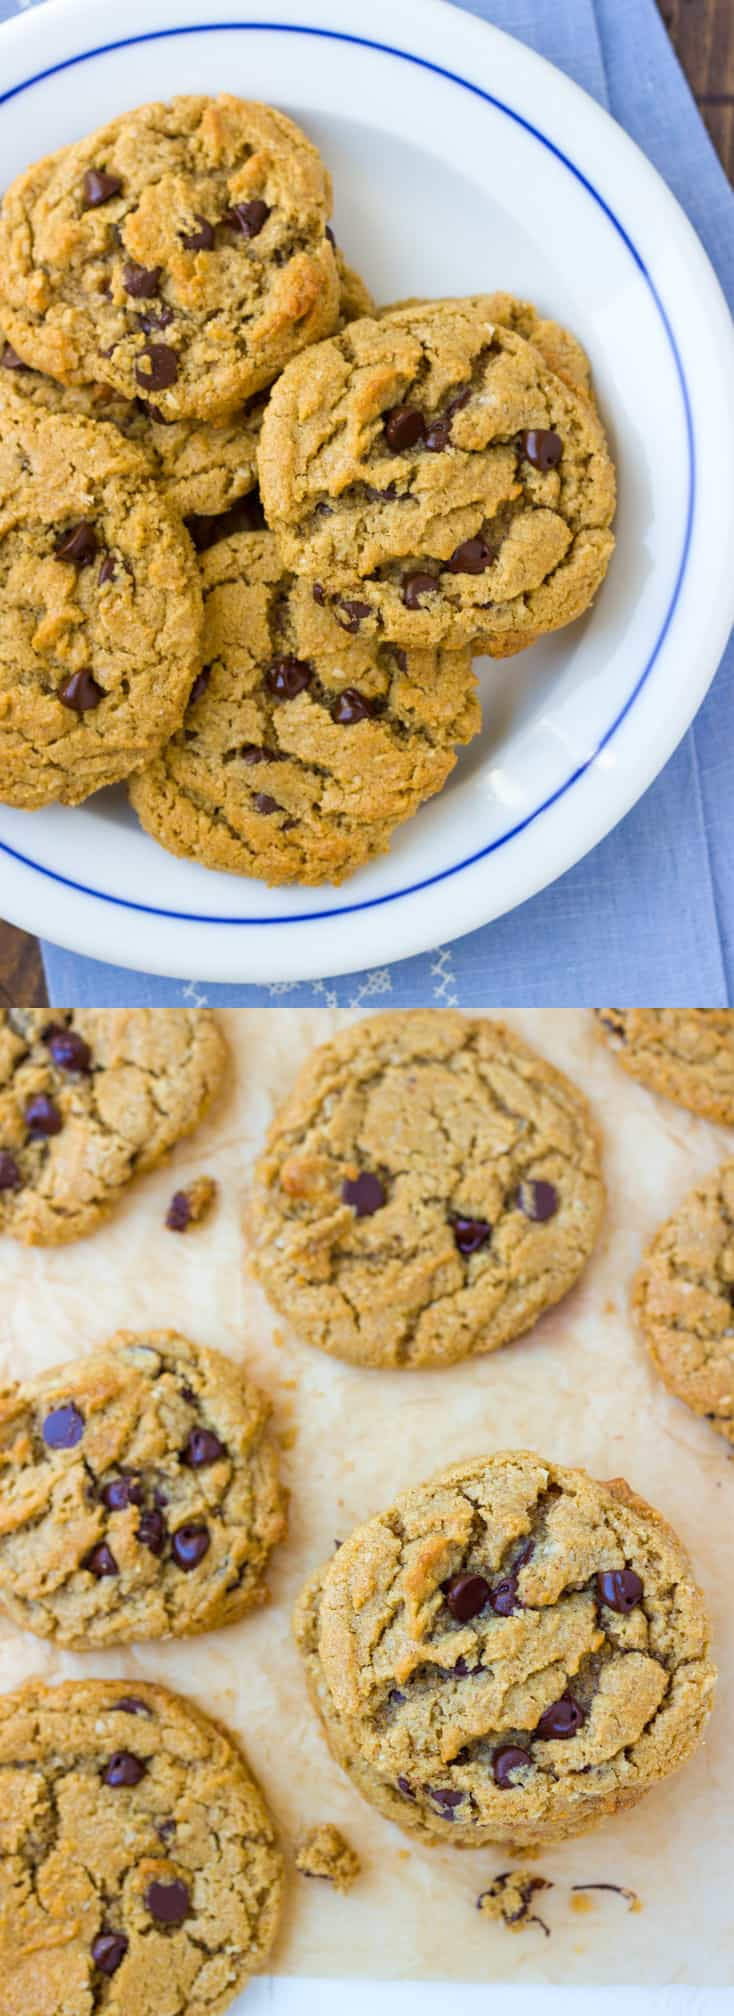 Gluten-Free Chocolate Chip Peanut Butter Oatmeal Cookies! Nobody will guess these delicious cookies are gluten-free.